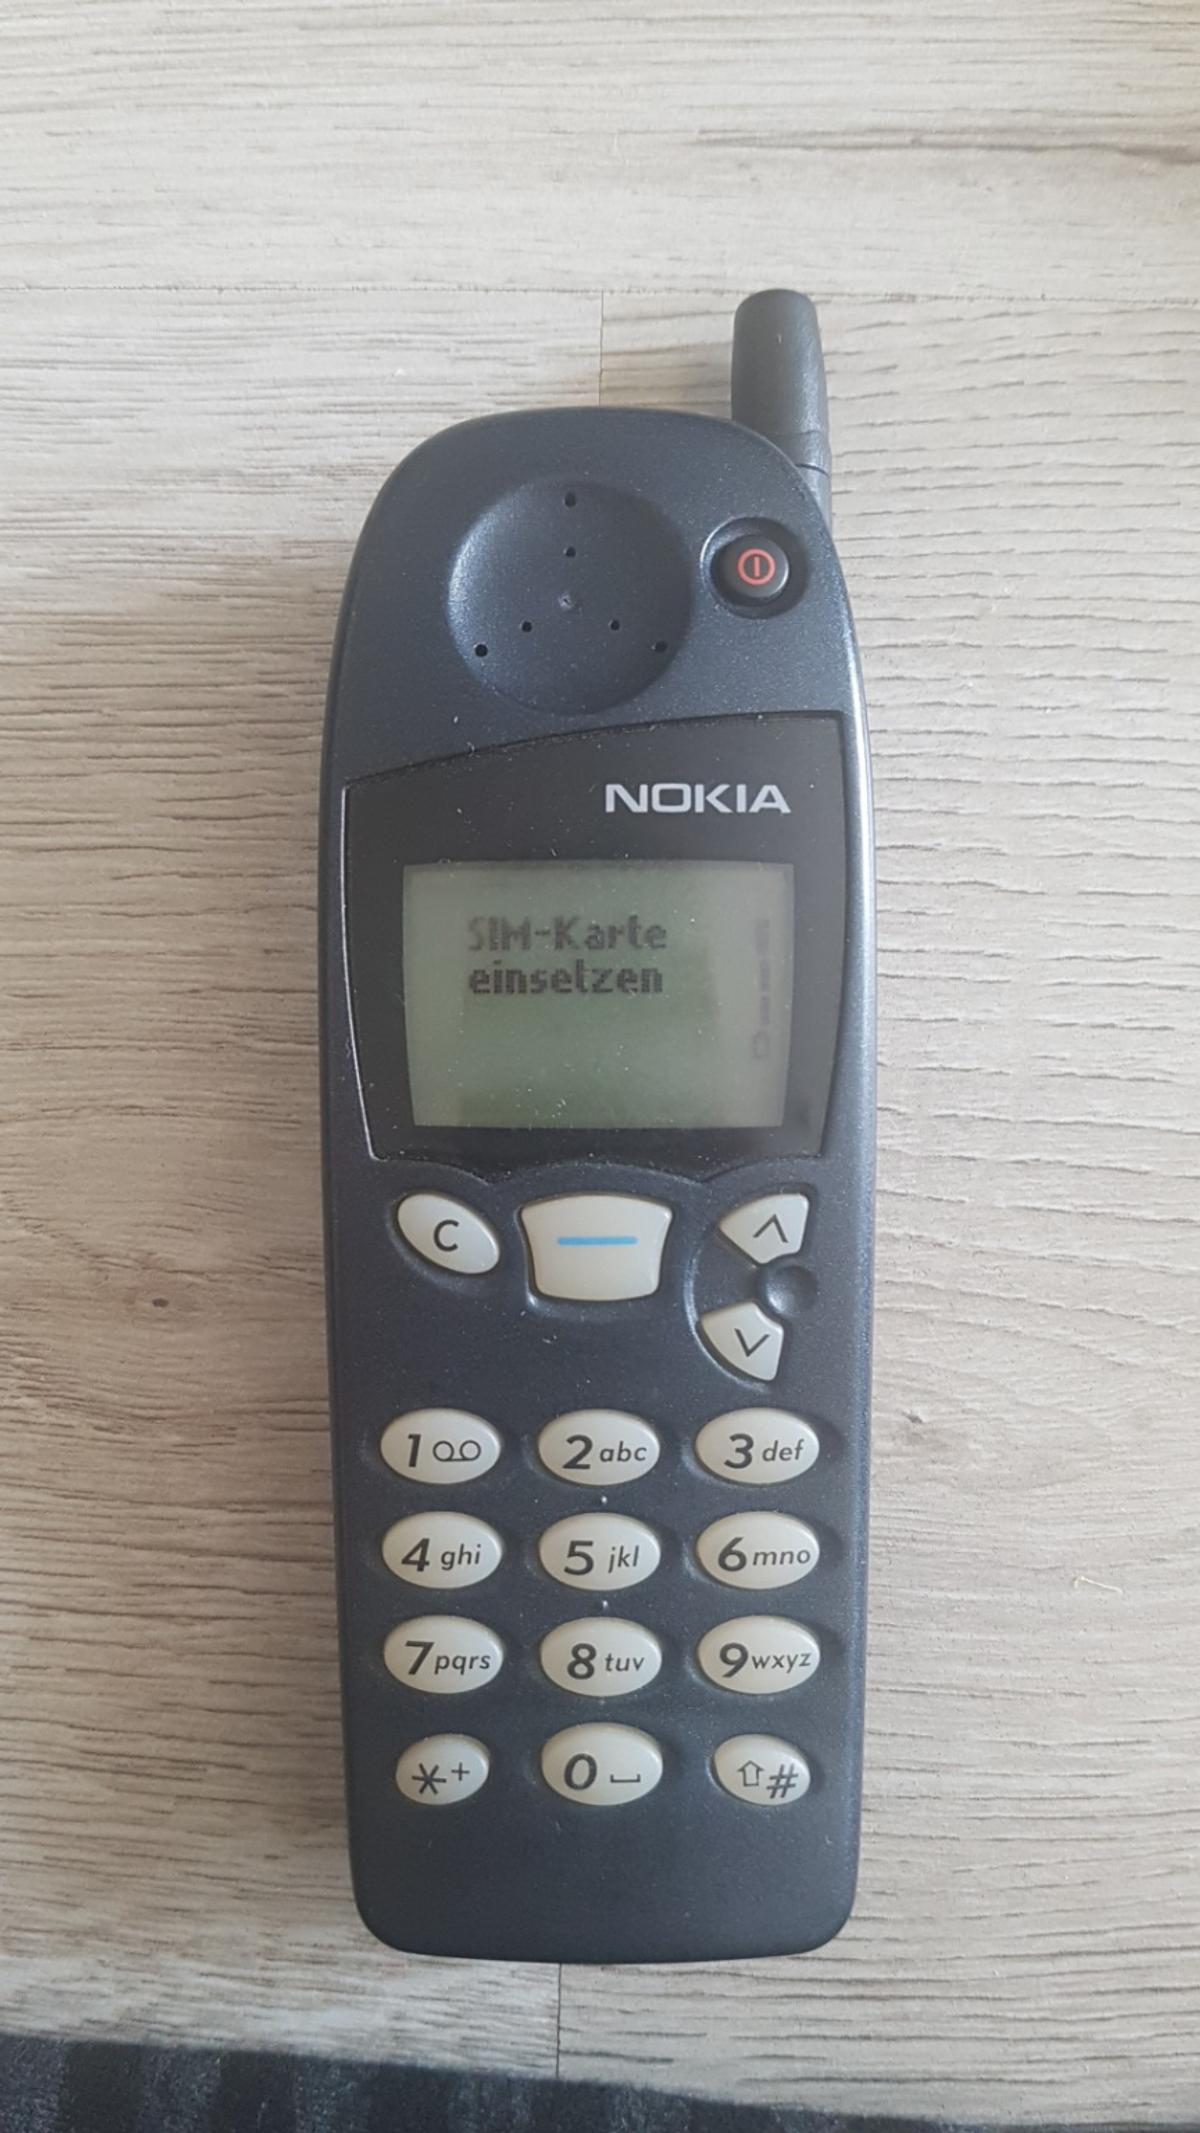 Nokia 5110 In 91126 Schwabach For 18 99 For Sale Shpock